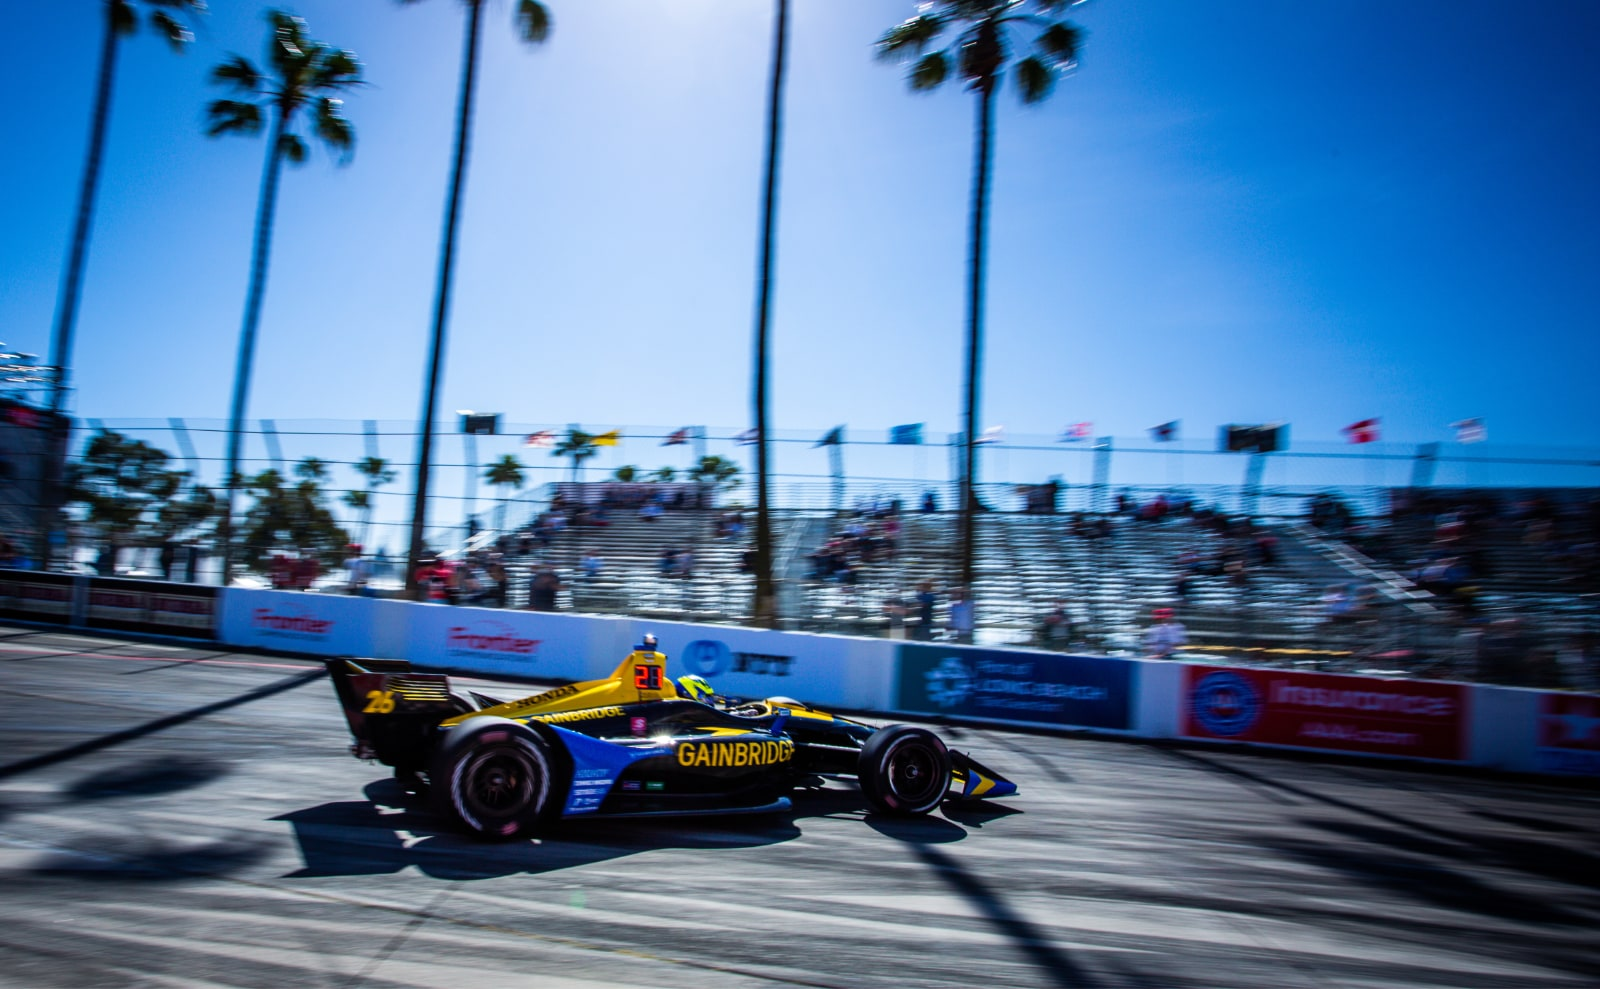 Zach Veach starts down Long Beach front straight in 2019 Acura GP of Long Beach practice